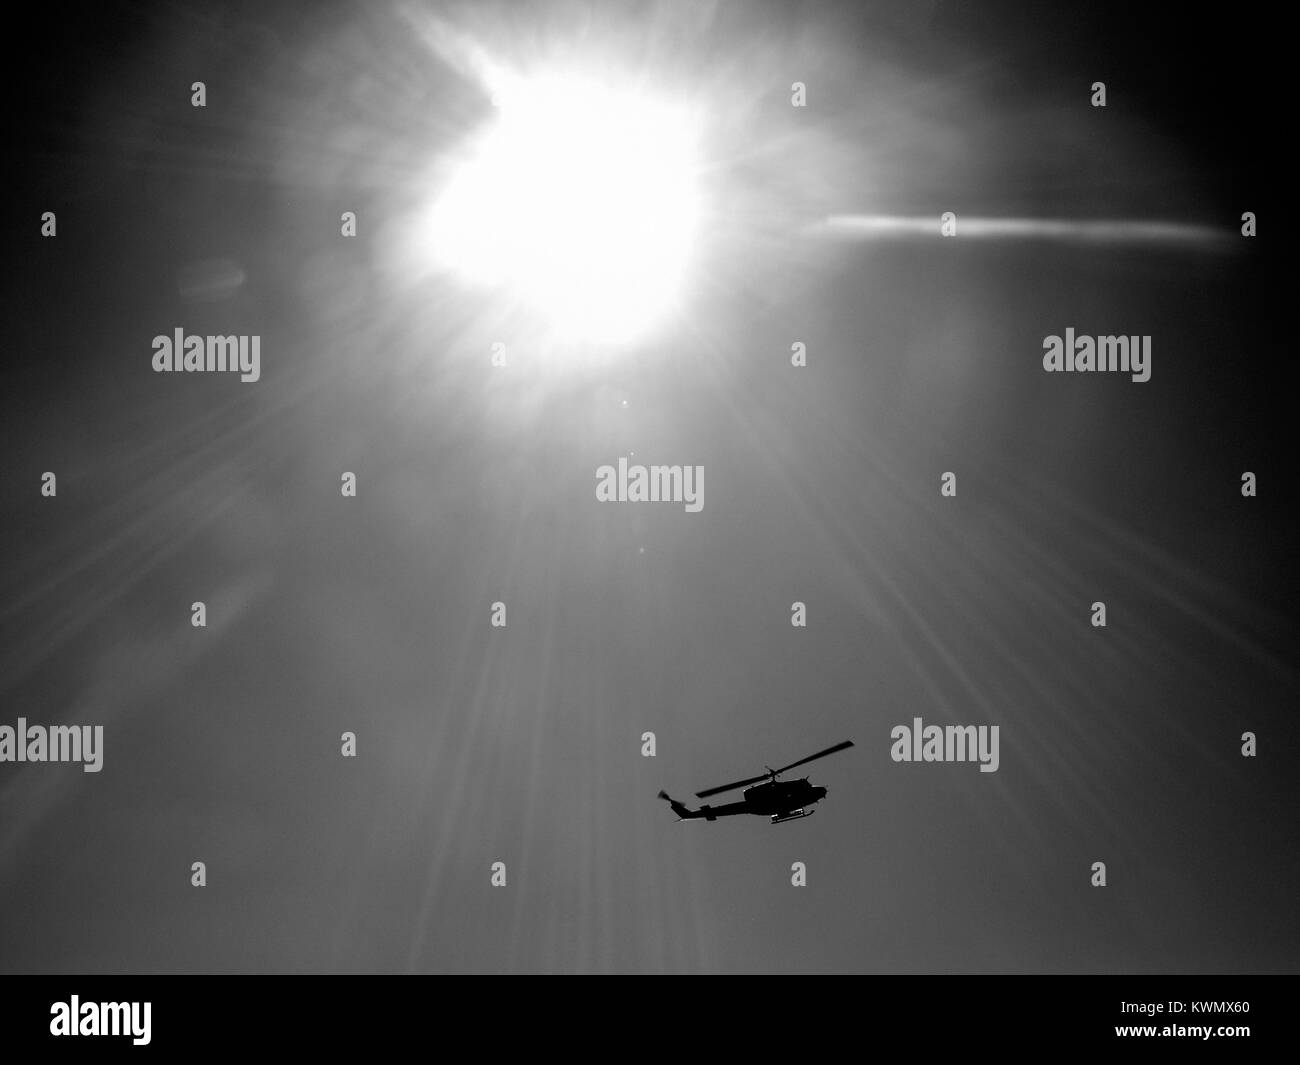 Helicopter under the sun - Stock Image